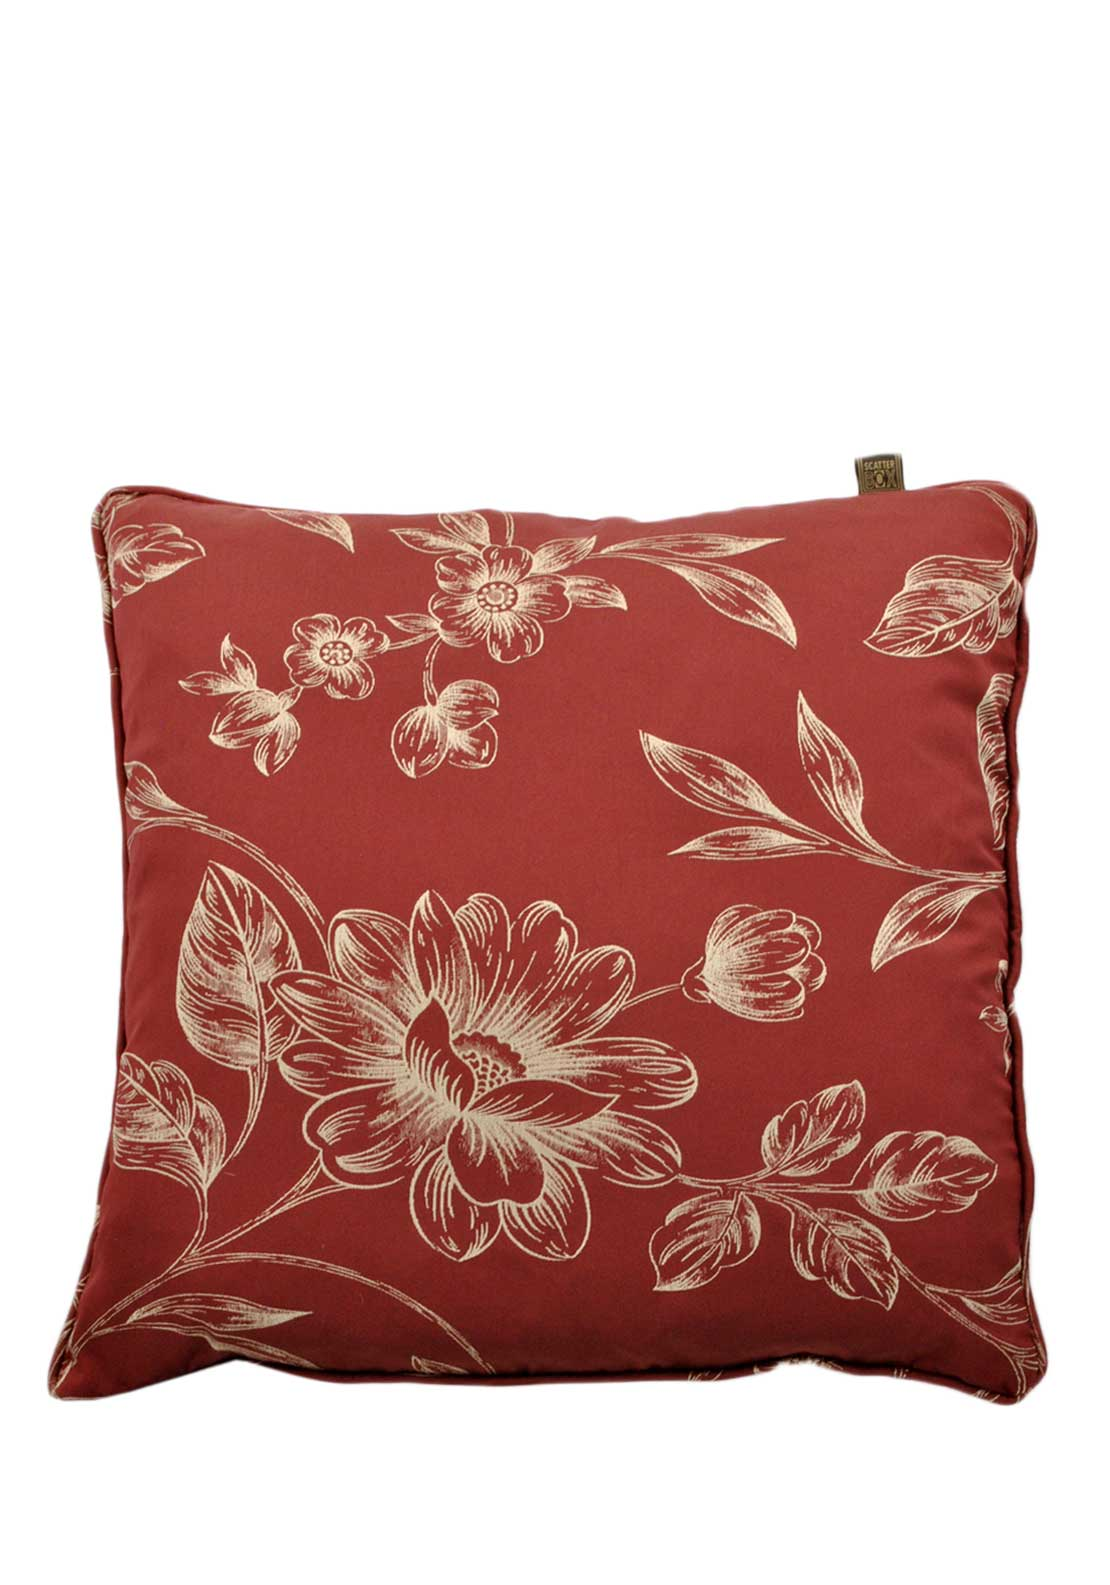 Scatterbox Lucano Cushion, 45 x 45cm, Terracotta